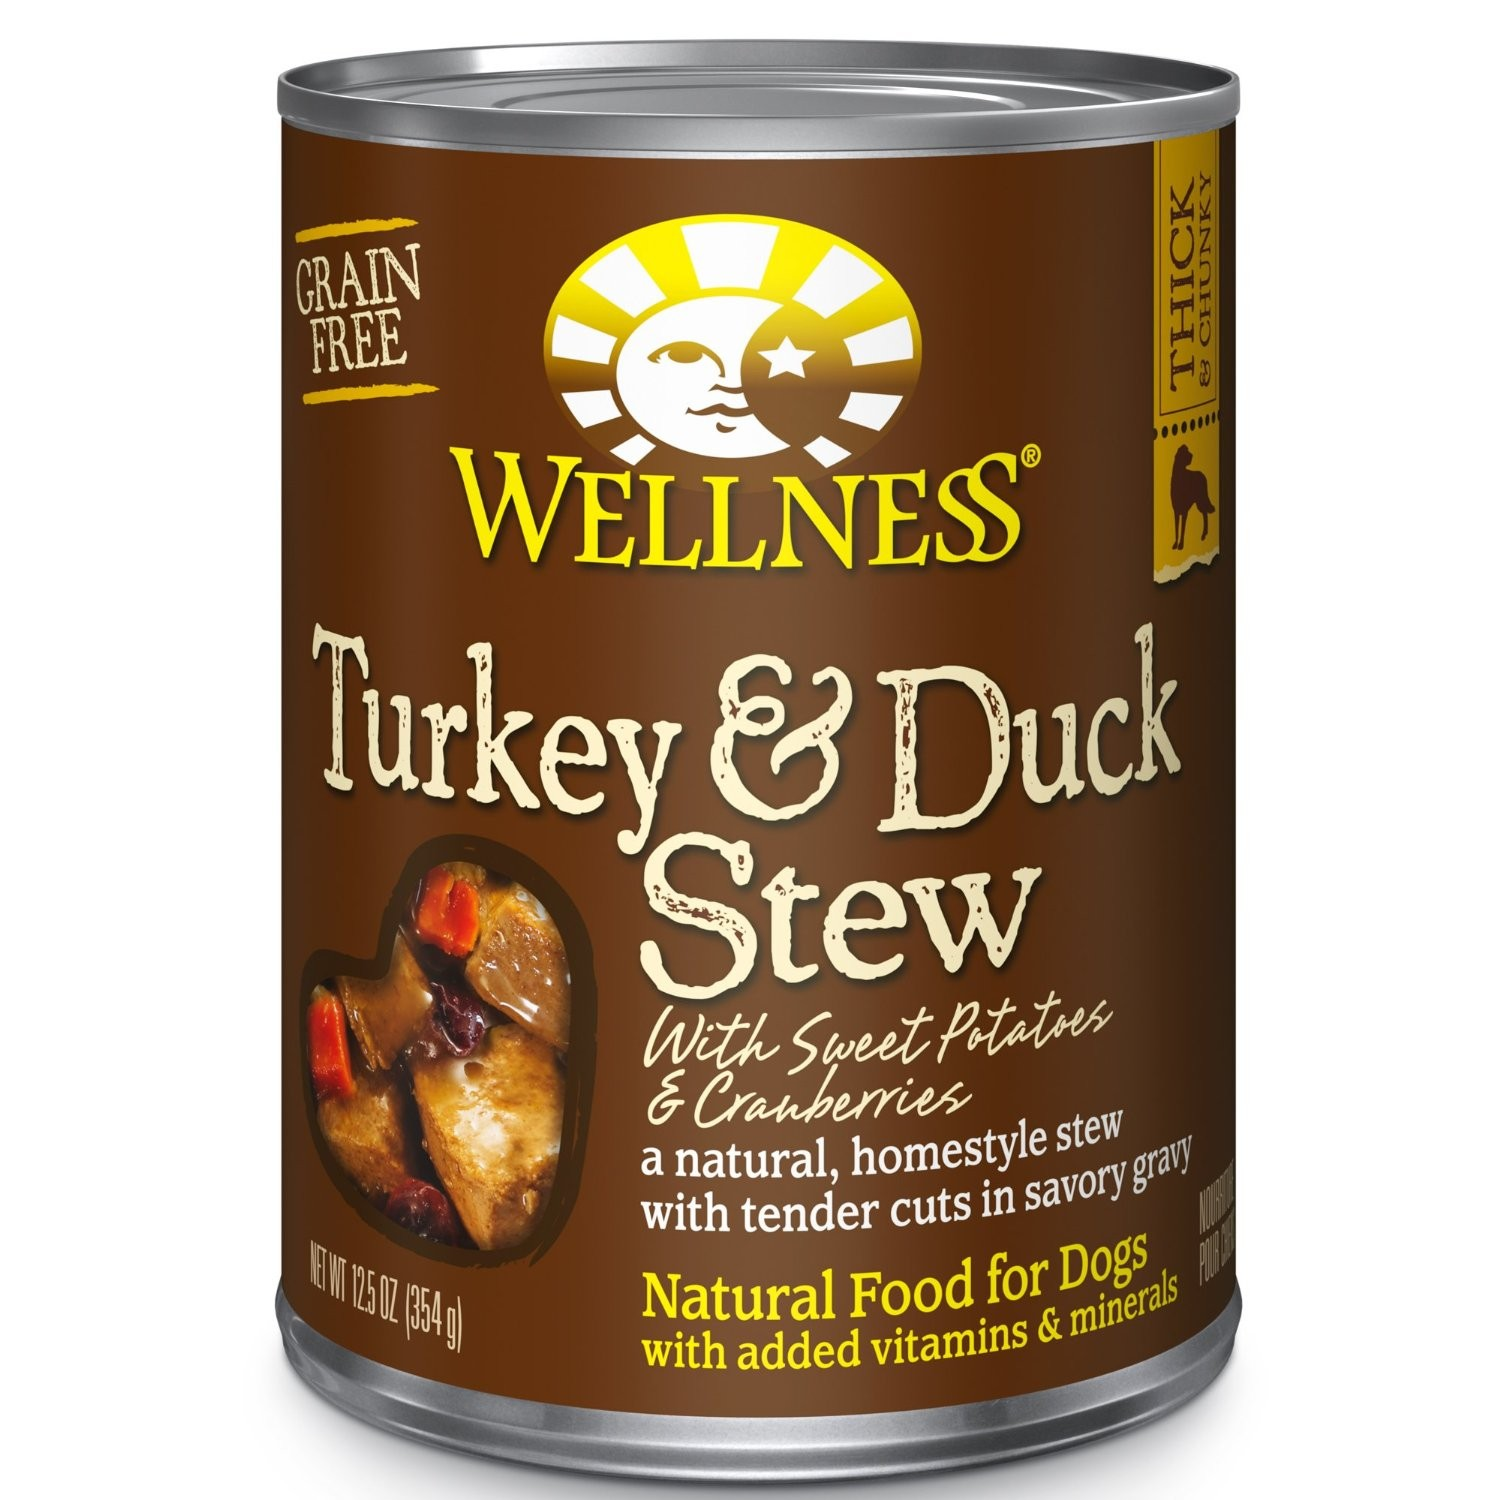 Wellness Turkey and Duck Stew 12.5oz Canned Dog Food, Case of 12